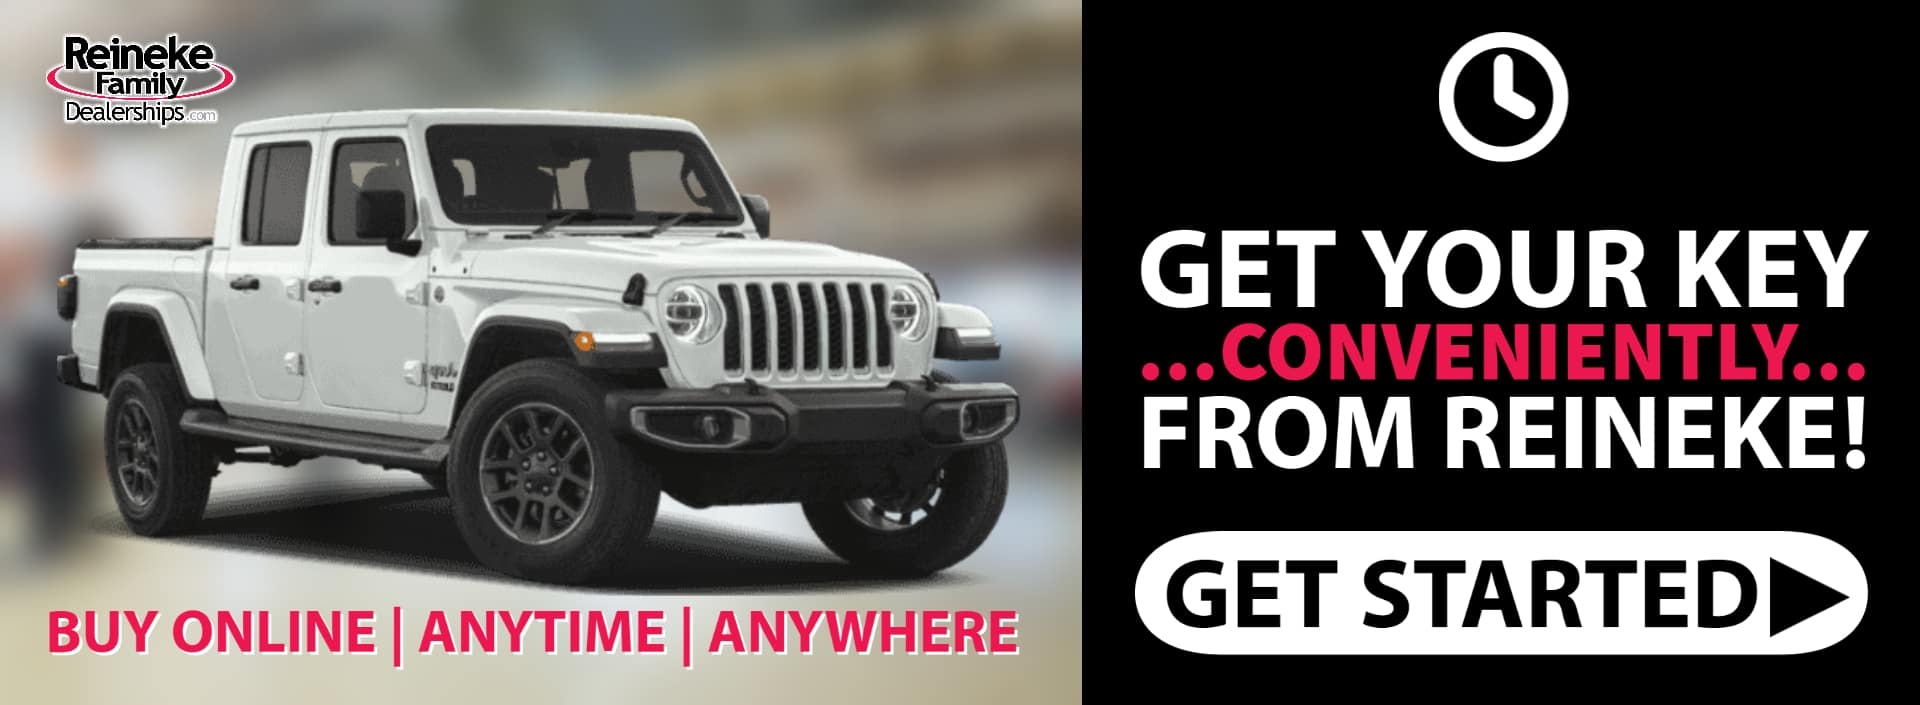 Reineke Chrysler Dodge Jeep Ram Auto Dealer Service In North Baltimore